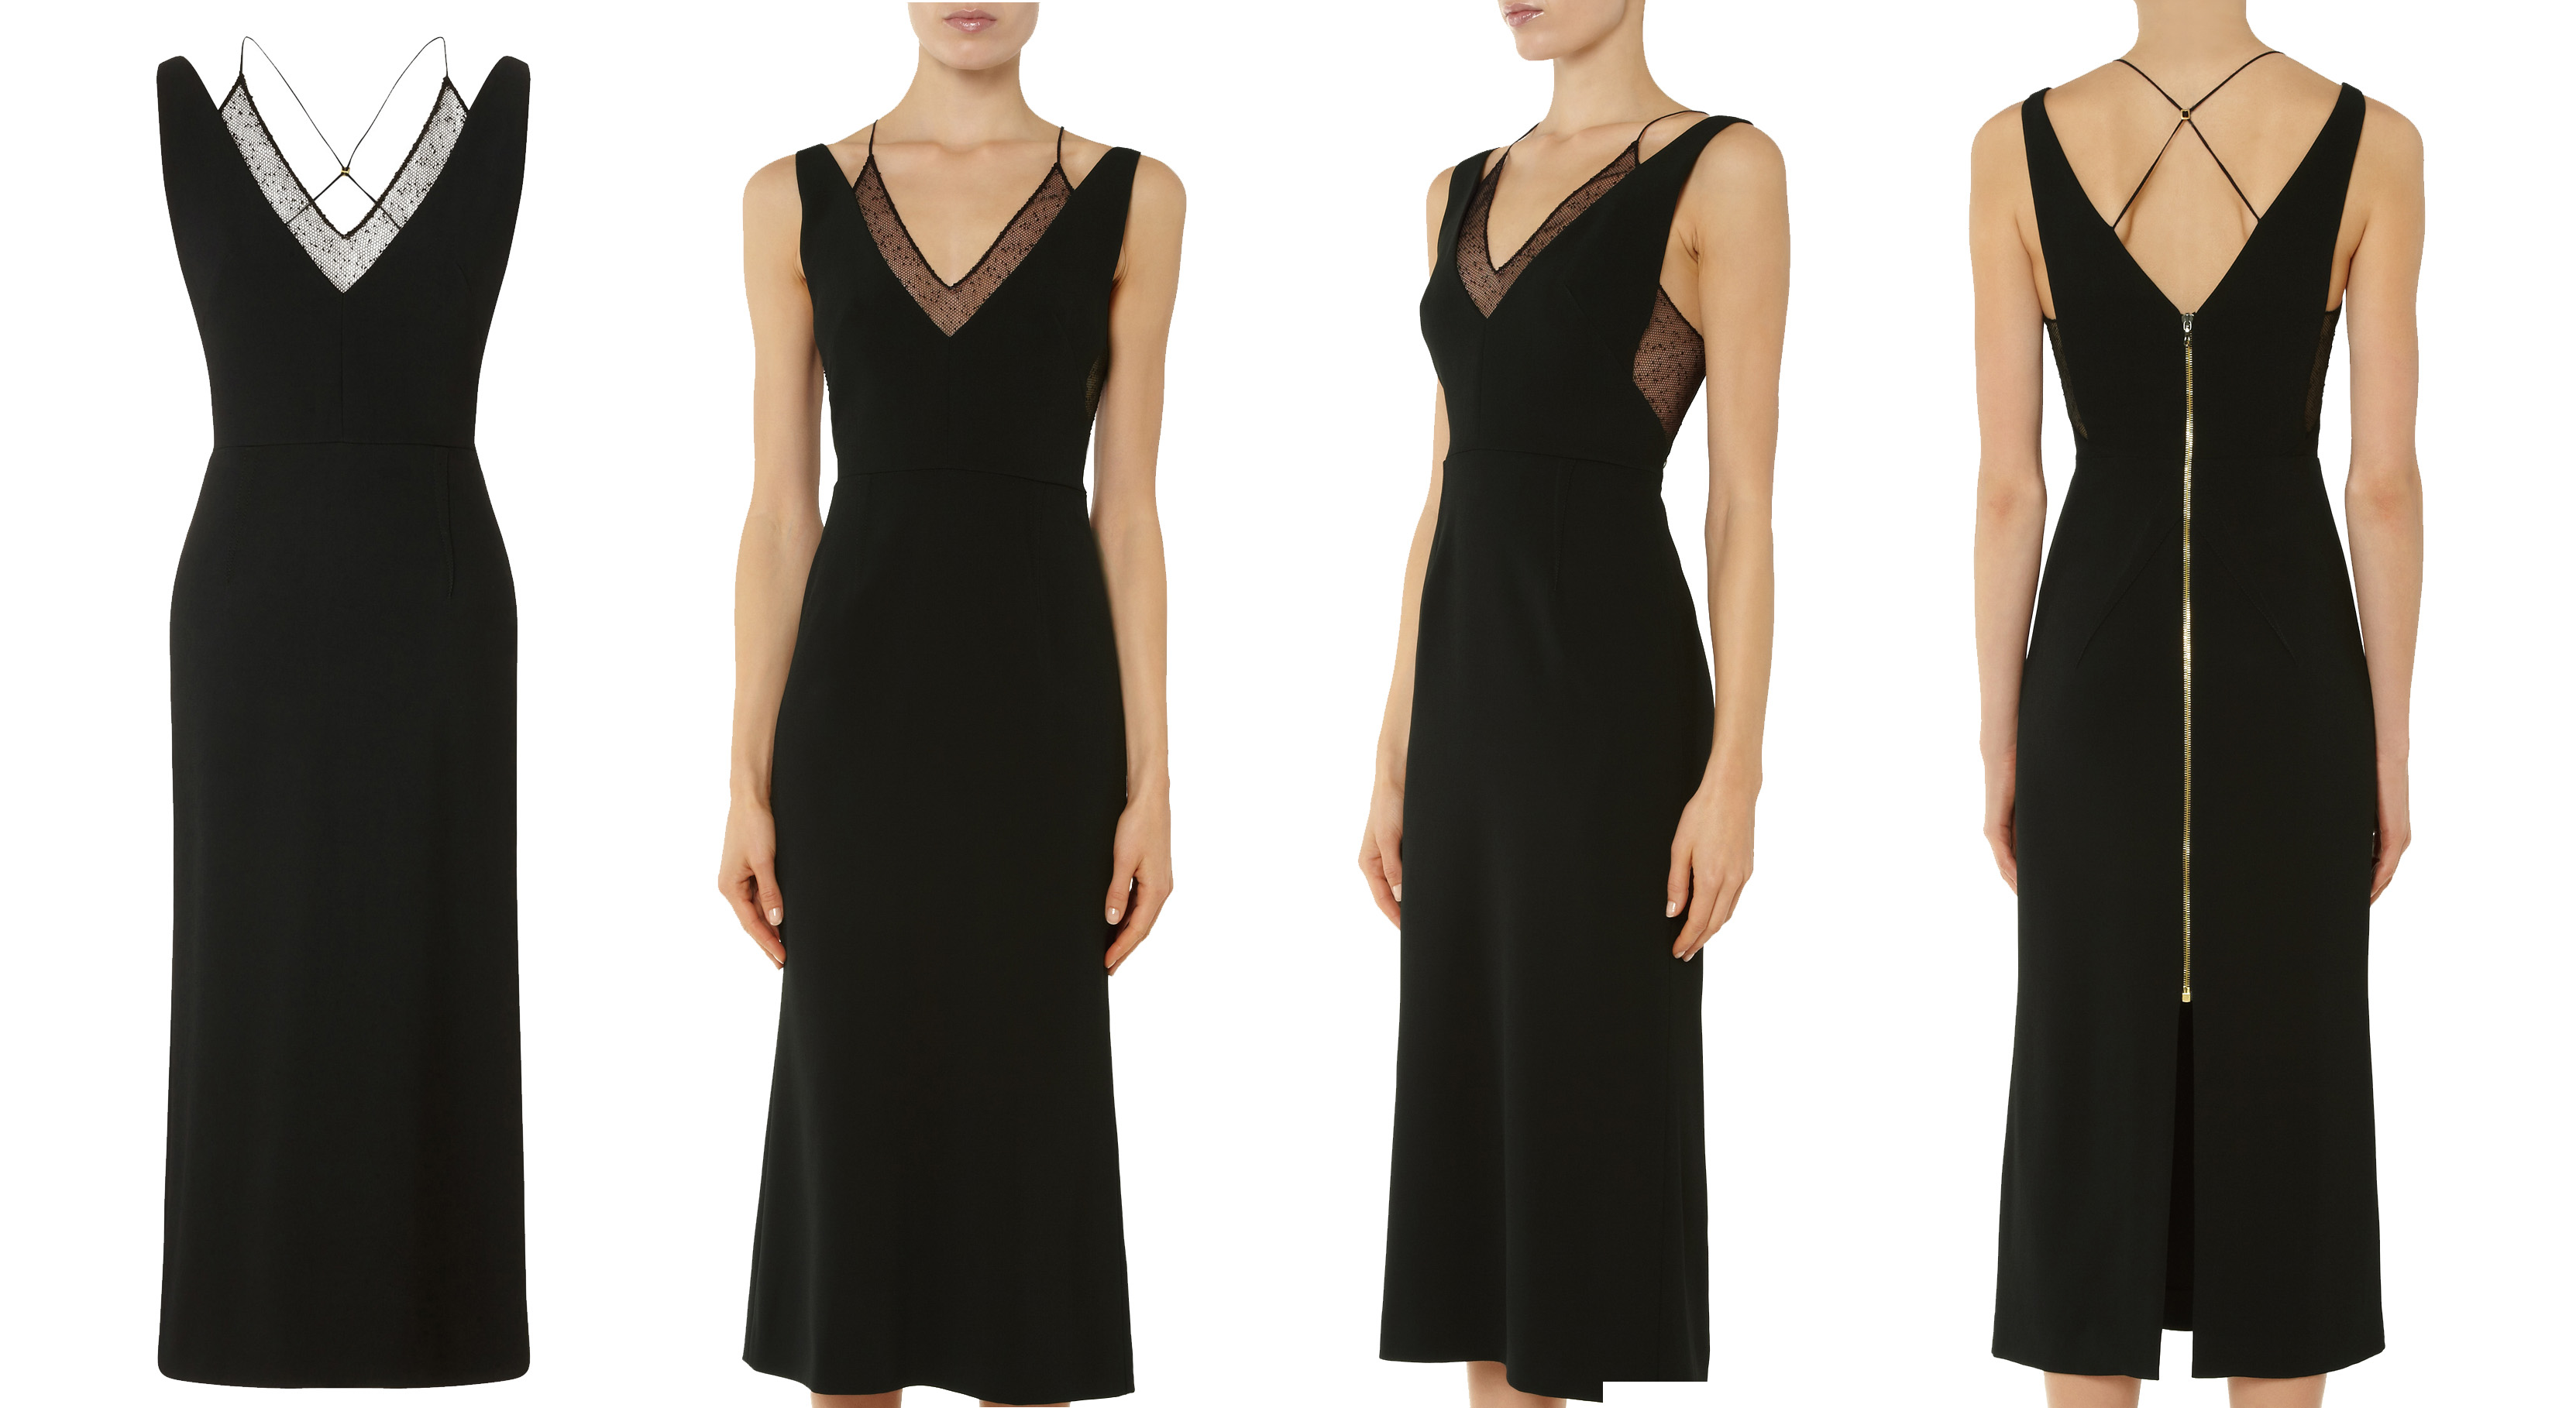 Roland Mouret Shannon dress in black